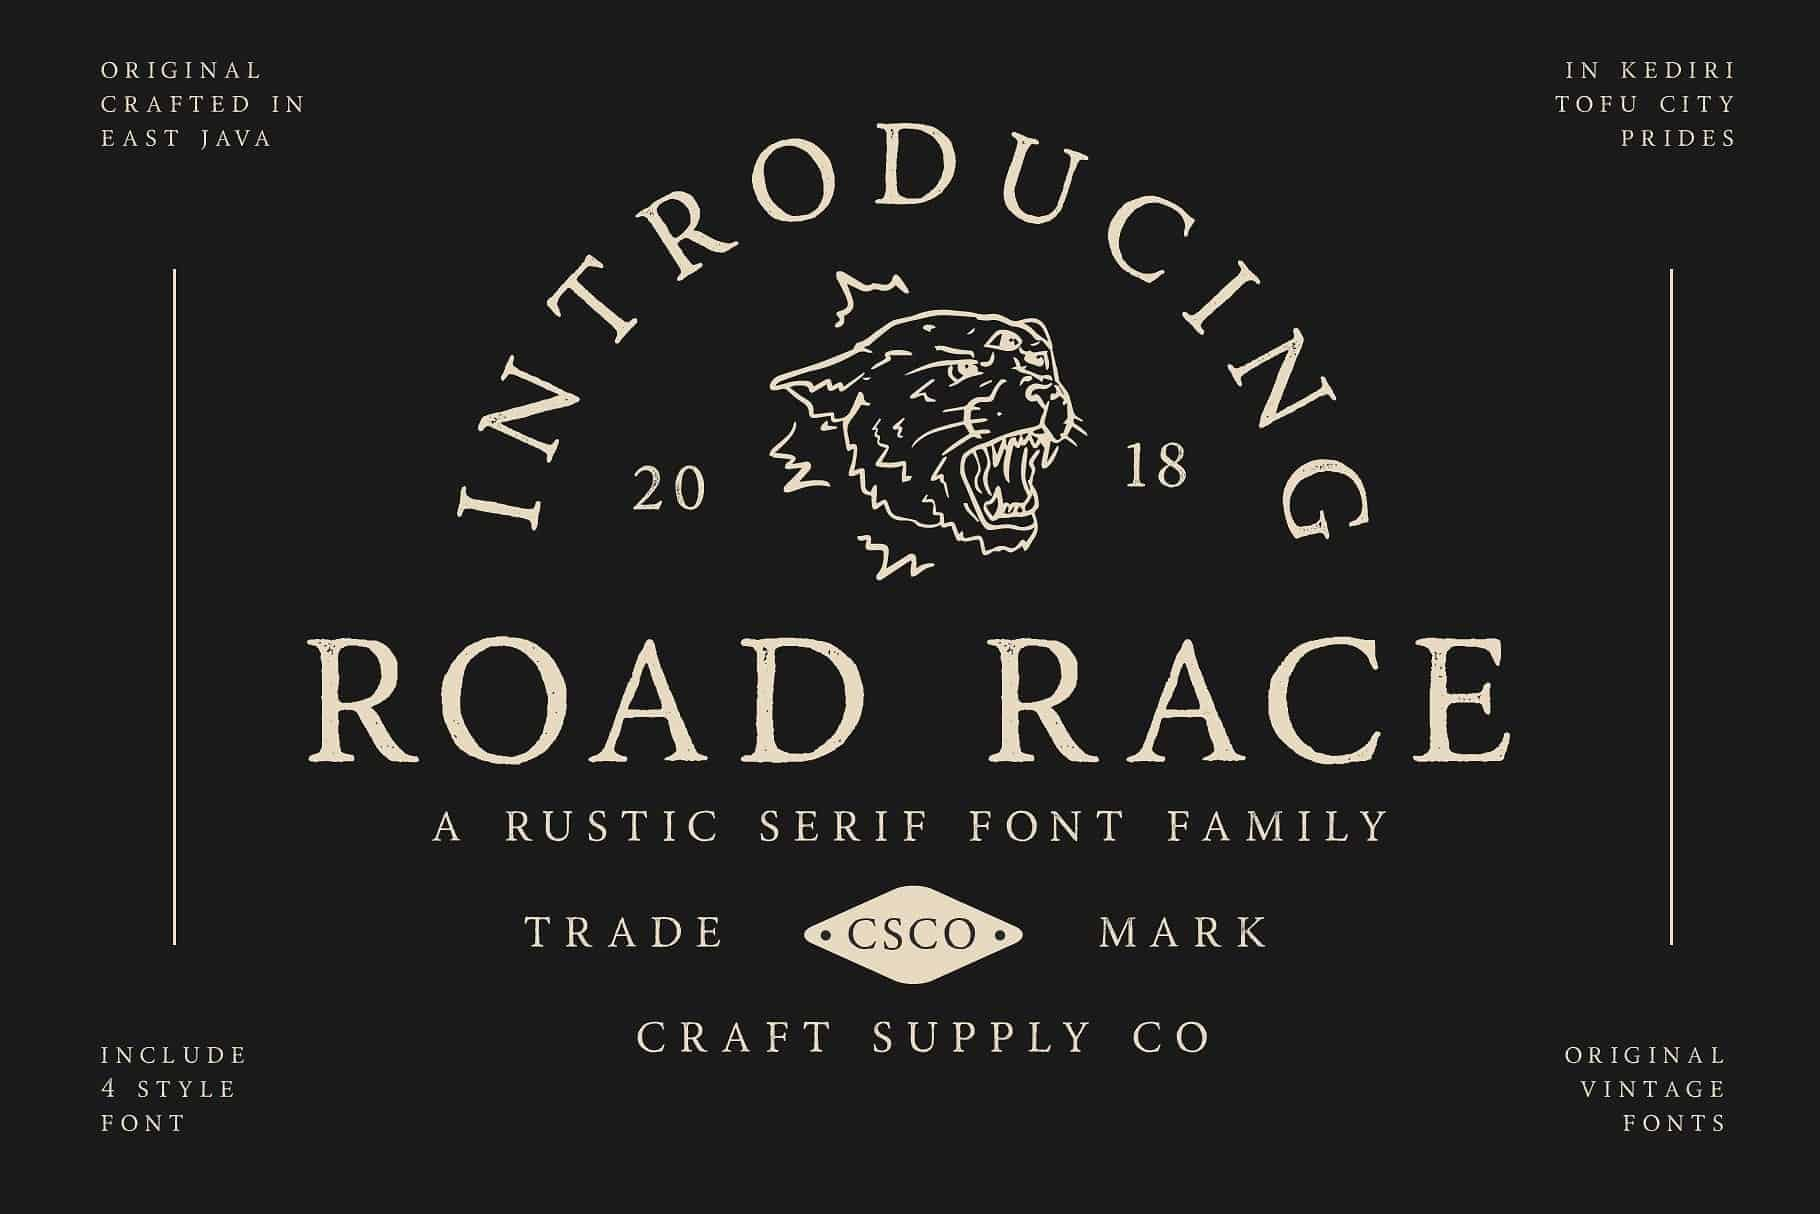 Road Race Typeface - Befonts com